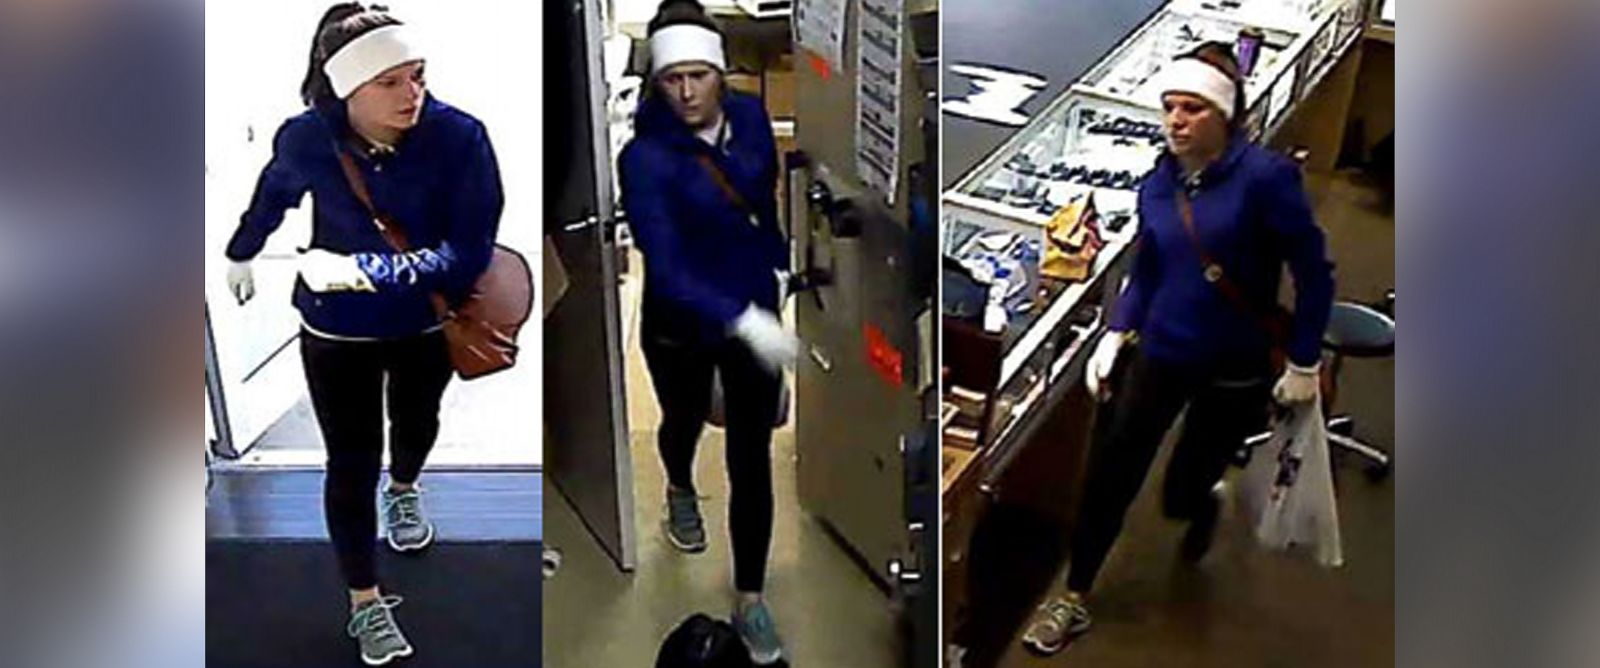 PHOTO: The FBI released these photos on Jan. 5, 2016, of the suspect wanted in connection with several jewelry store thefts.